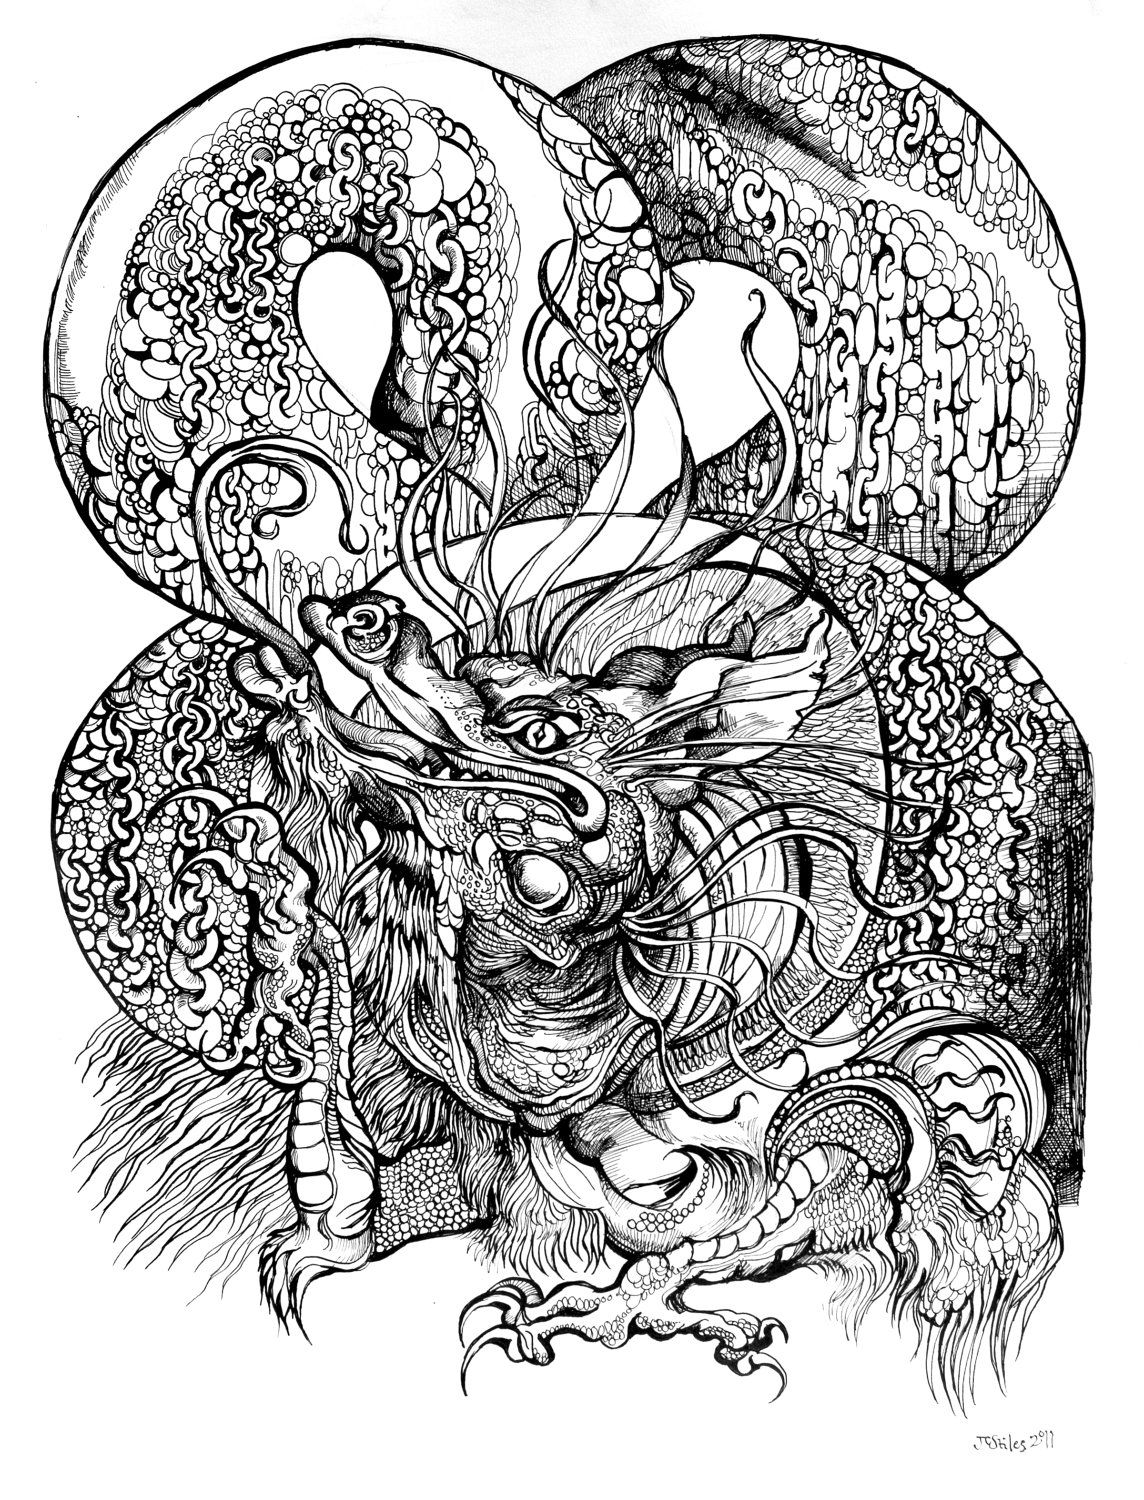 Tattoo designs coloring book - Black And White Tattoo Drawings Google Search Coloring Worksheetscoloring Booksadult